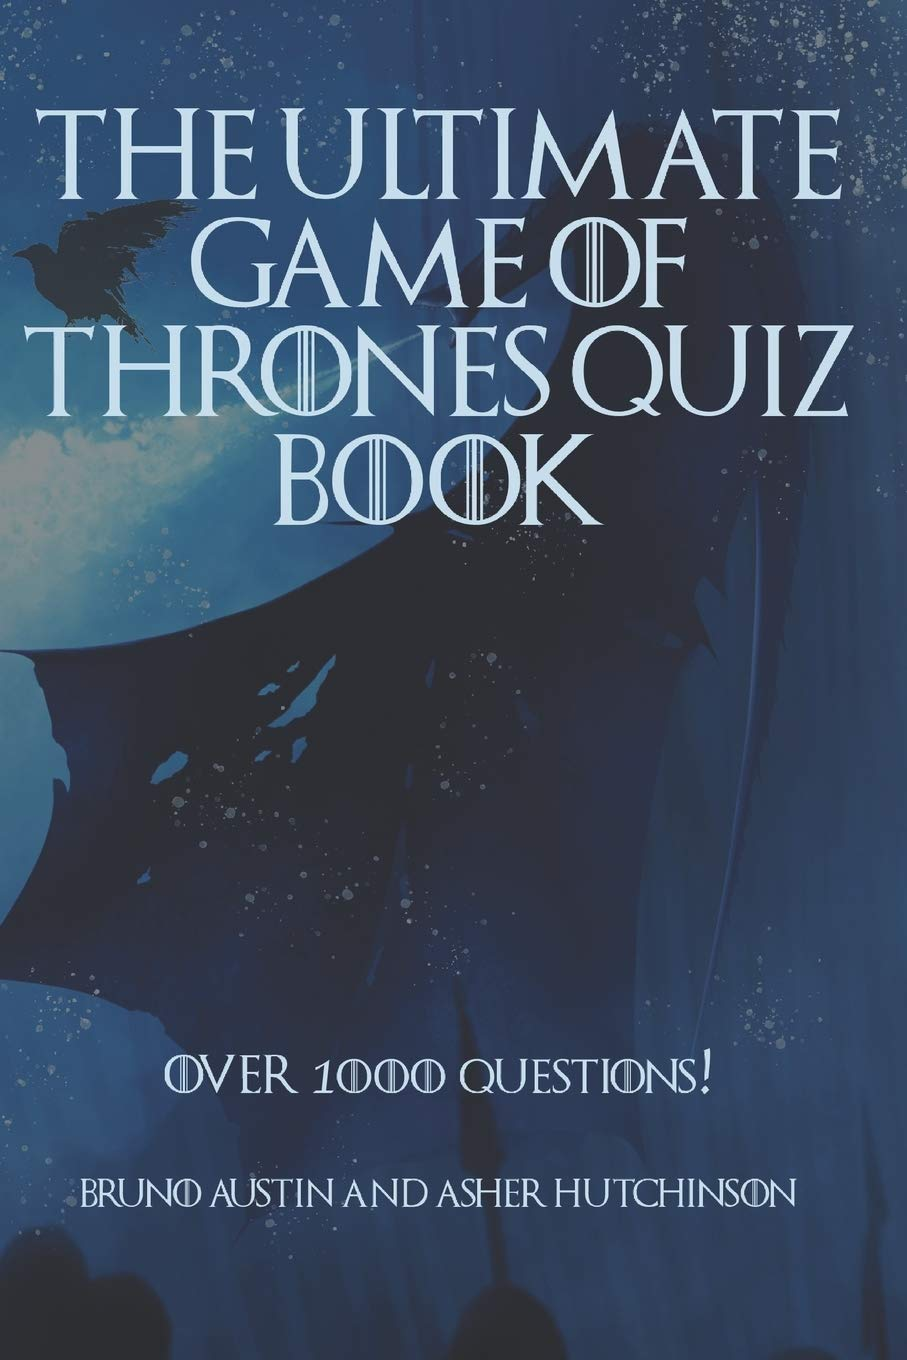 Buy The Ultimate Game Of Thrones Quiz Book Over 1000 Questions Book Online At Low Prices In India The Ultimate Game Of Thrones Quiz Book Over 1000 Questions Reviews Ratings Amazon In